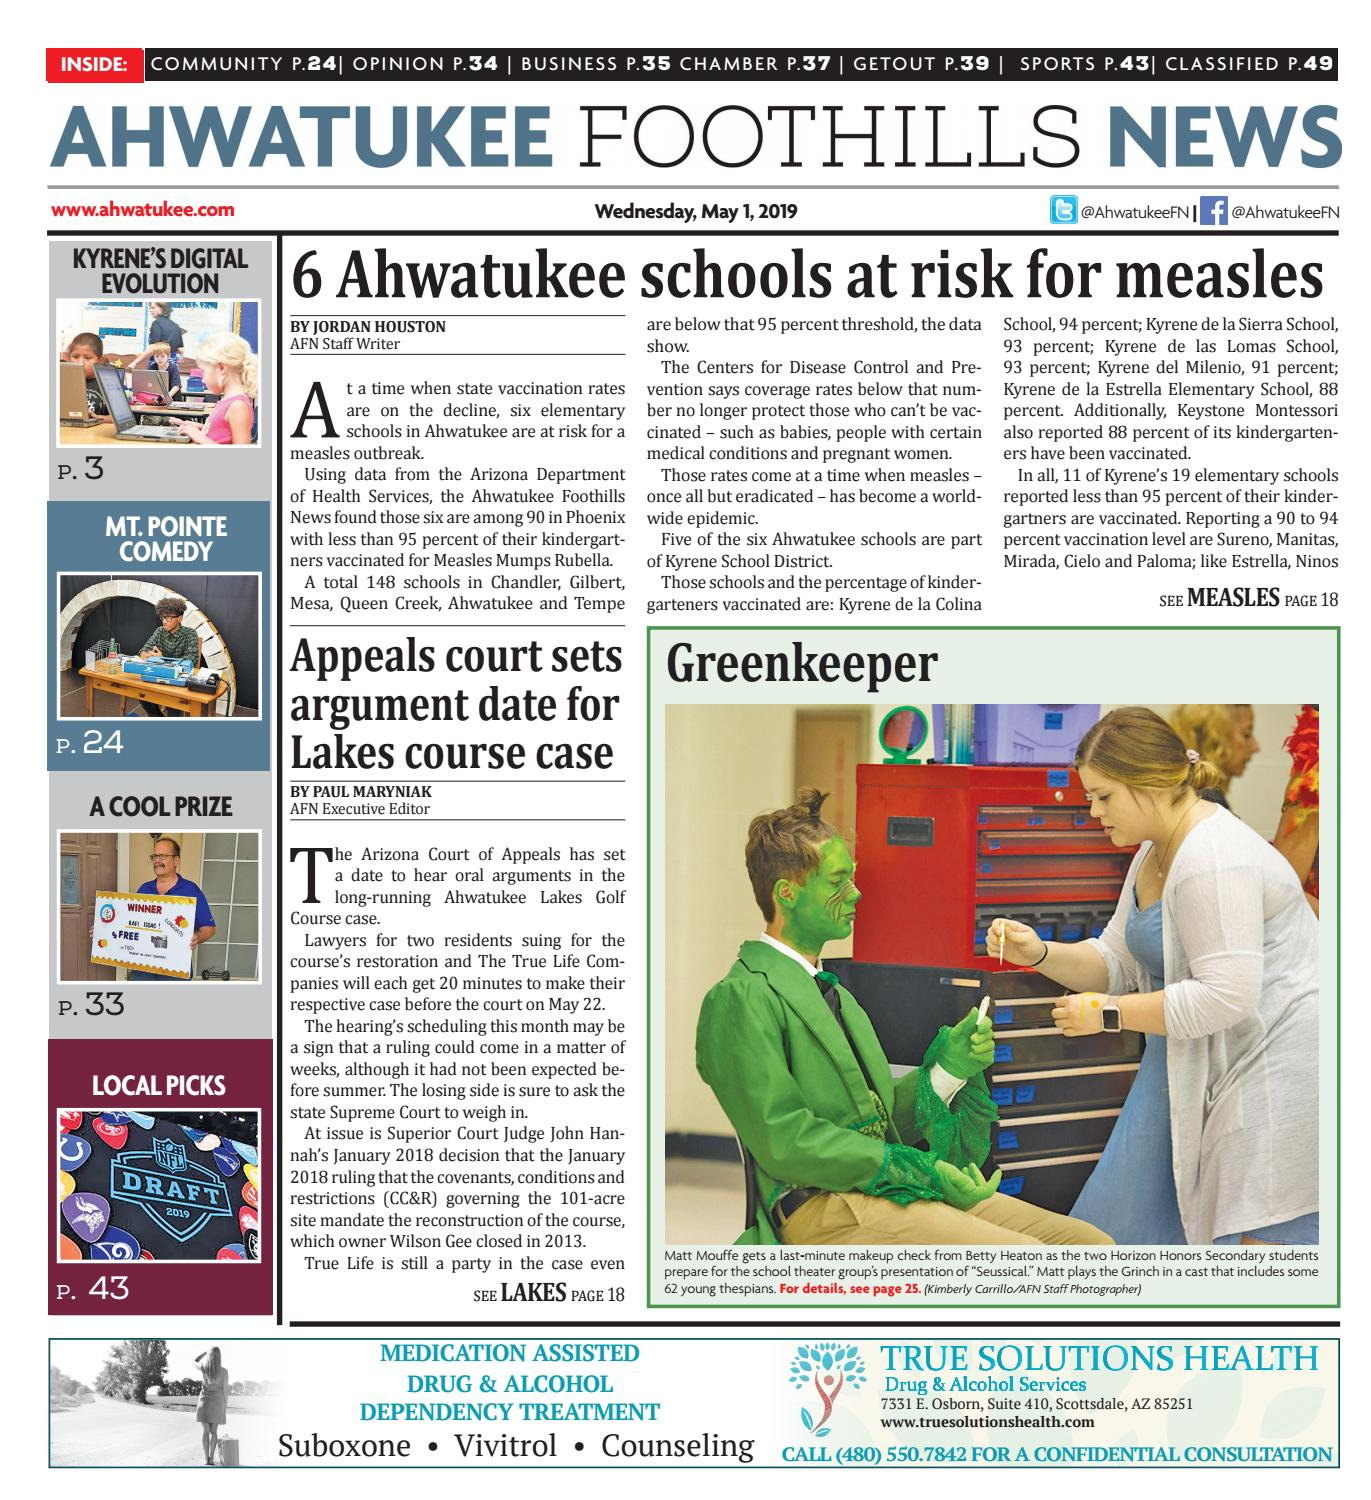 Ahwatukee Foothills News - May 1, 2019 by Times Media Group - issuu